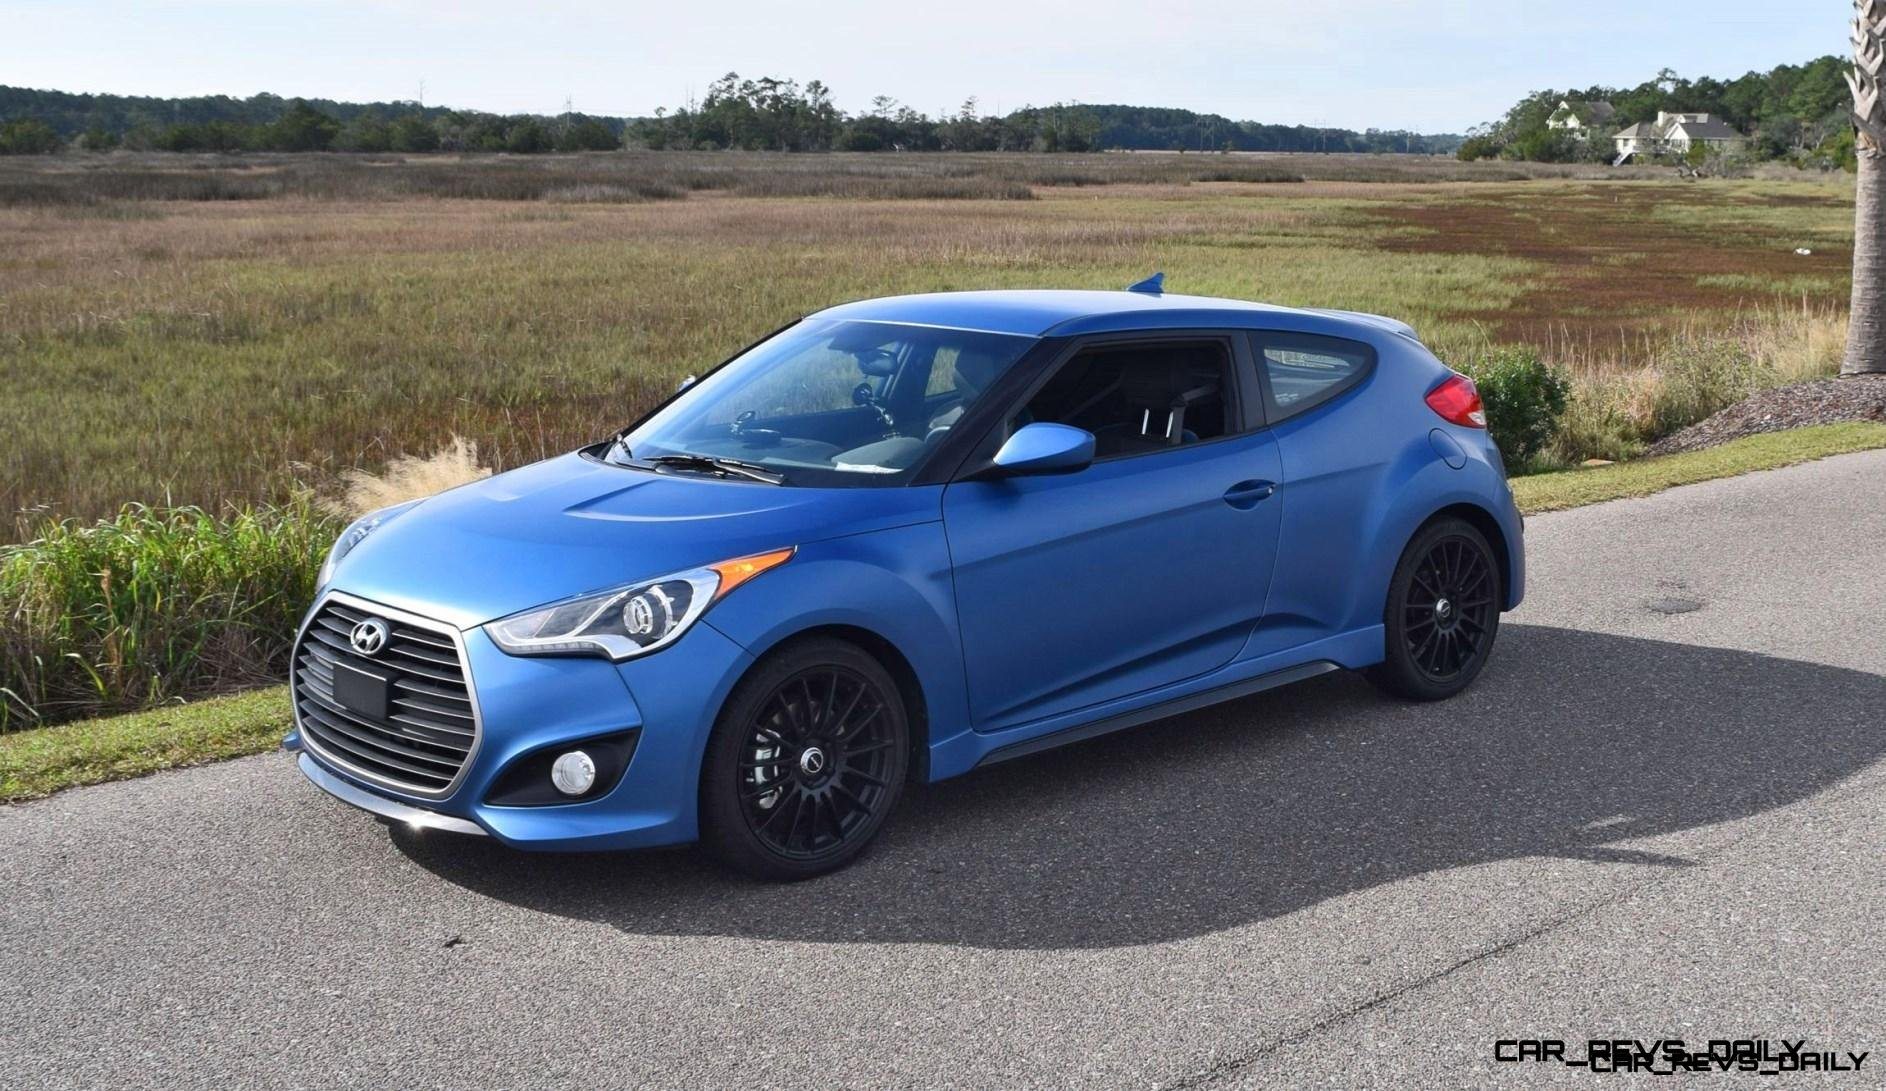 HD Road Test Review - 2016 Hyundai Veloster RALLY Turbo 6-Speed Manual